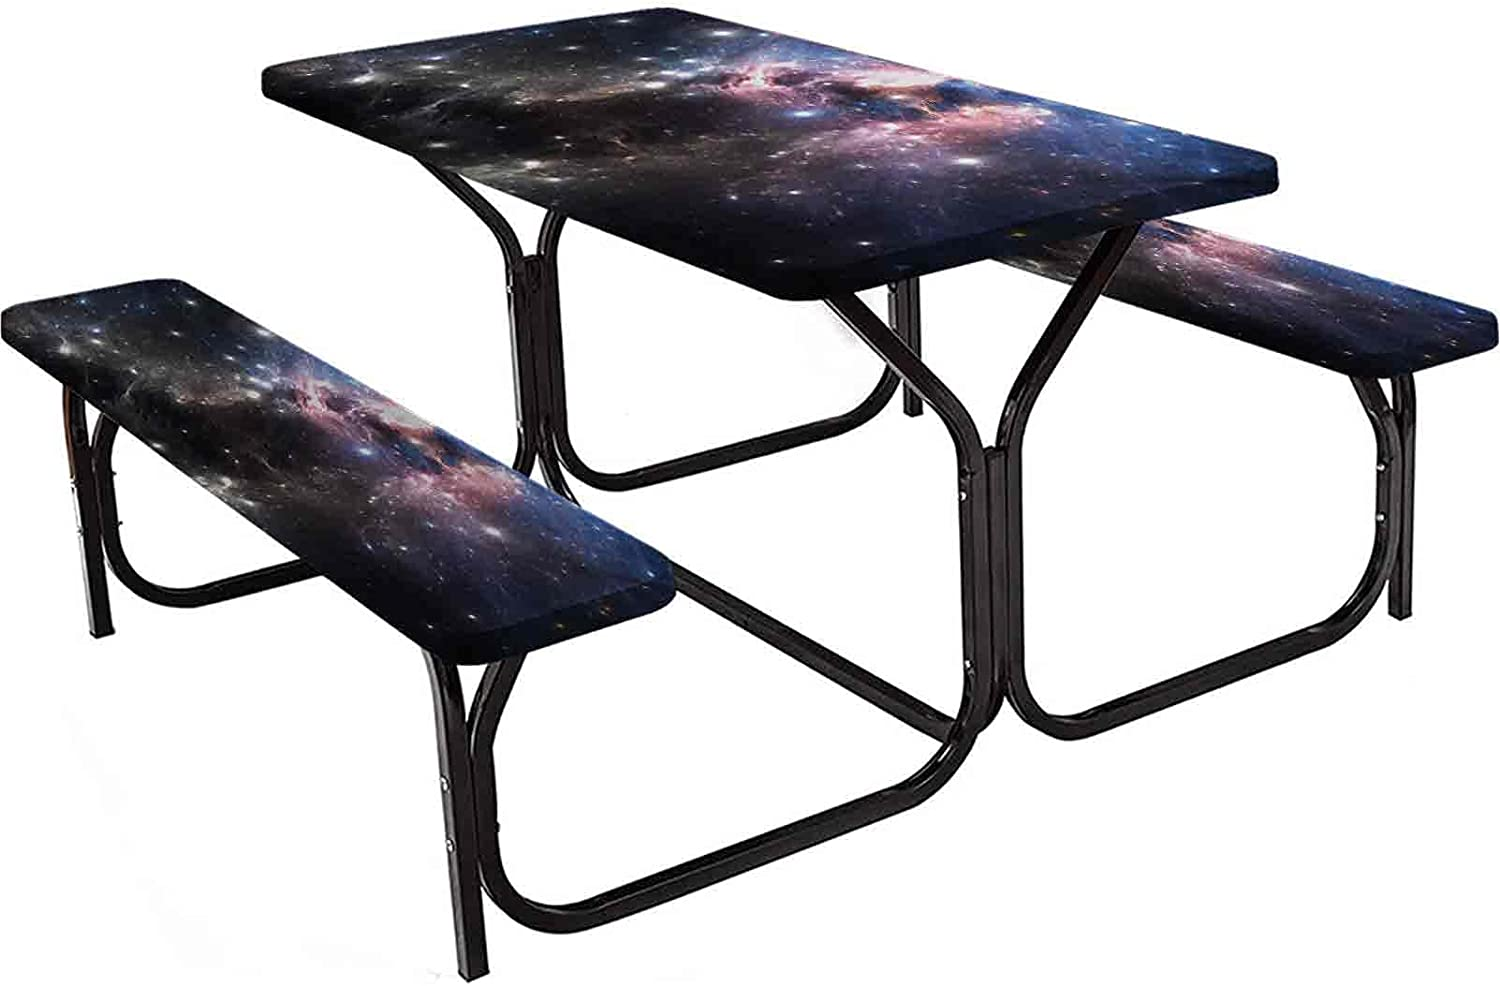 Constellation Tablecloth Rectangular Fitting Cover Table, Giant Nebula in Vivid Colors Space Motion Supernova Futuristic, 3-Piece Set, Camping and Picnic 72